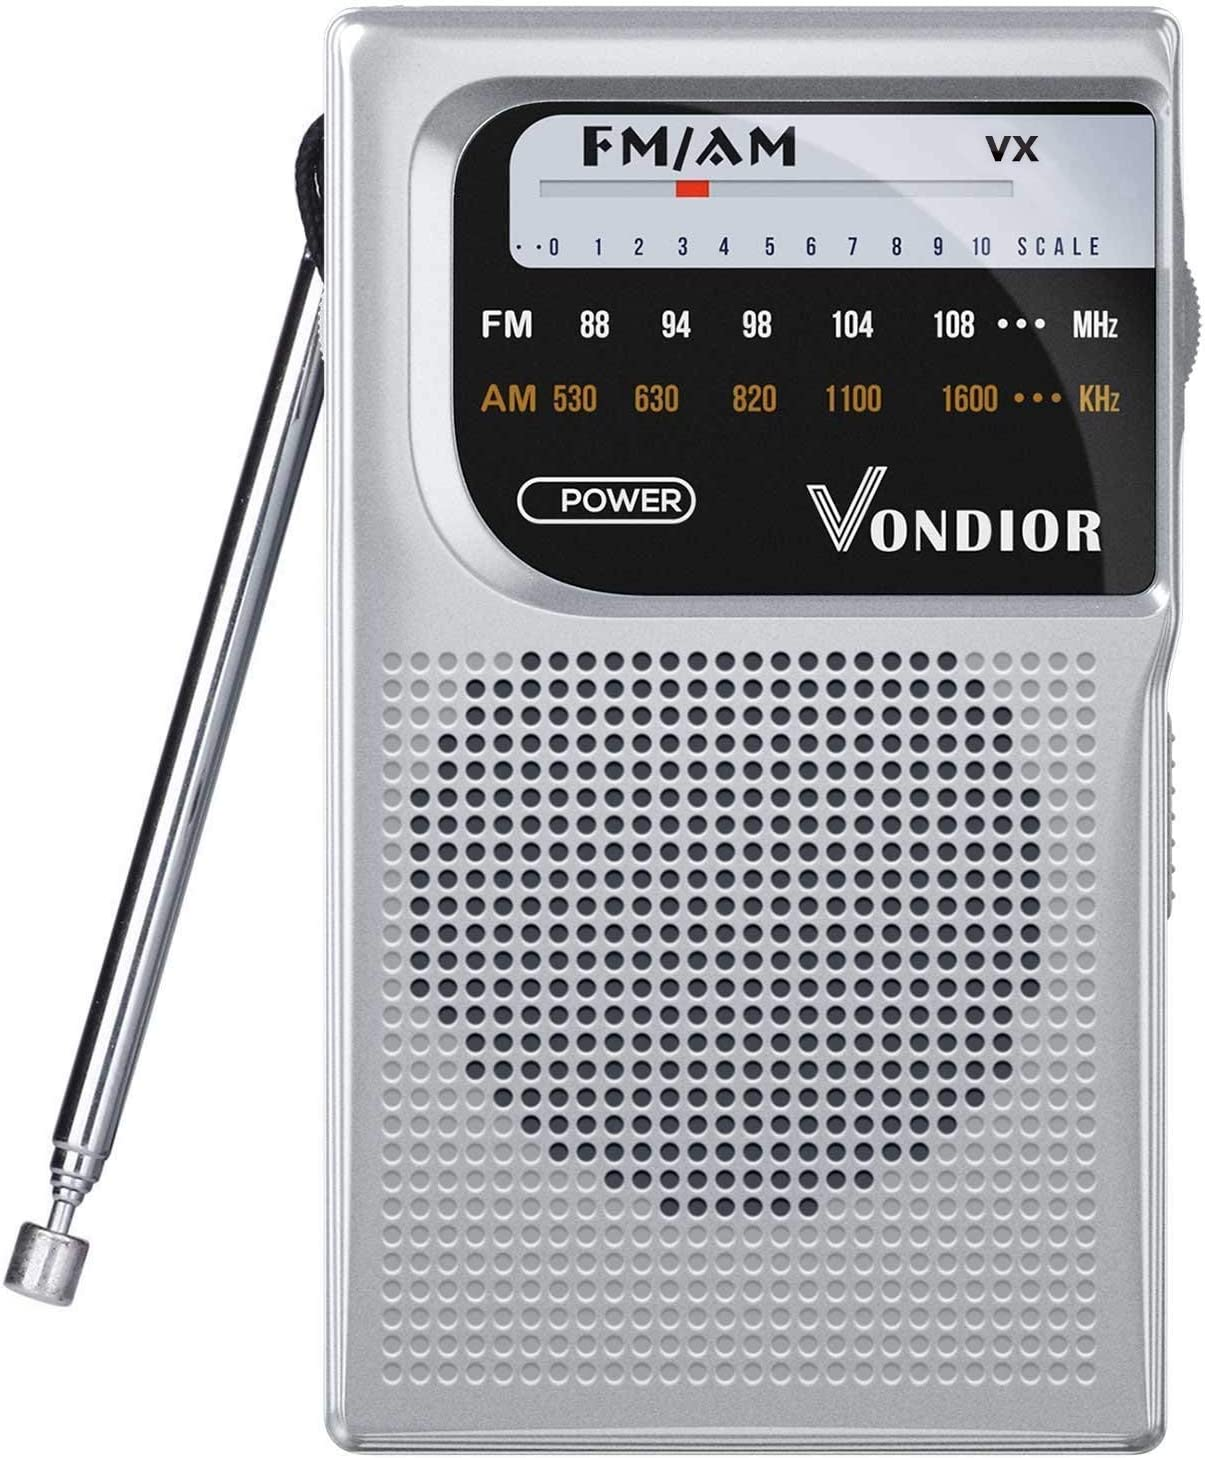 Top 10 Best Portable Radios In 2021 Reviews 21